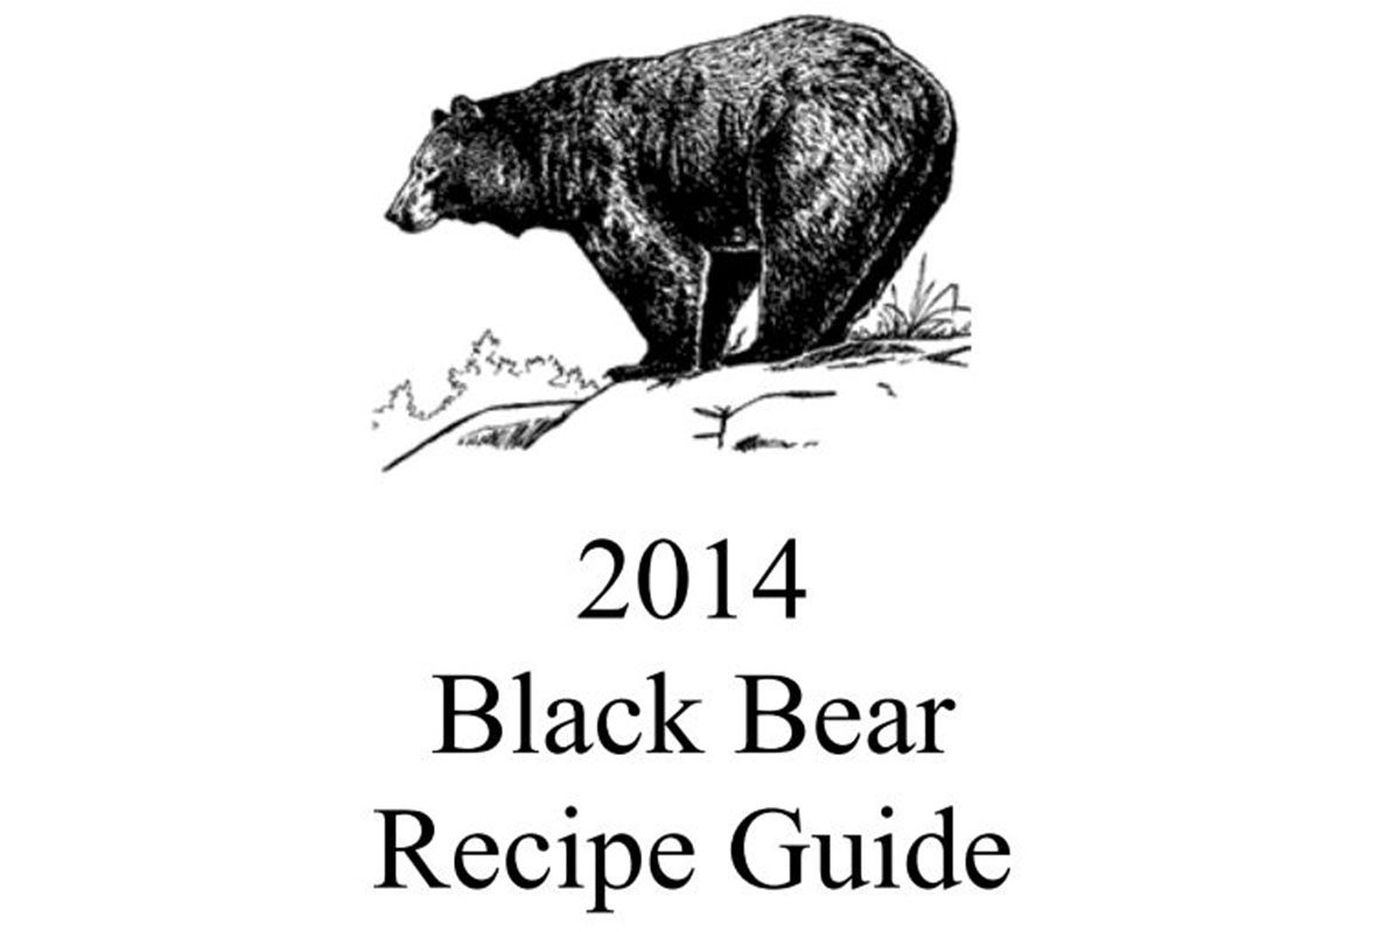 Would you eat bear? New Jersey has some tasty recipes